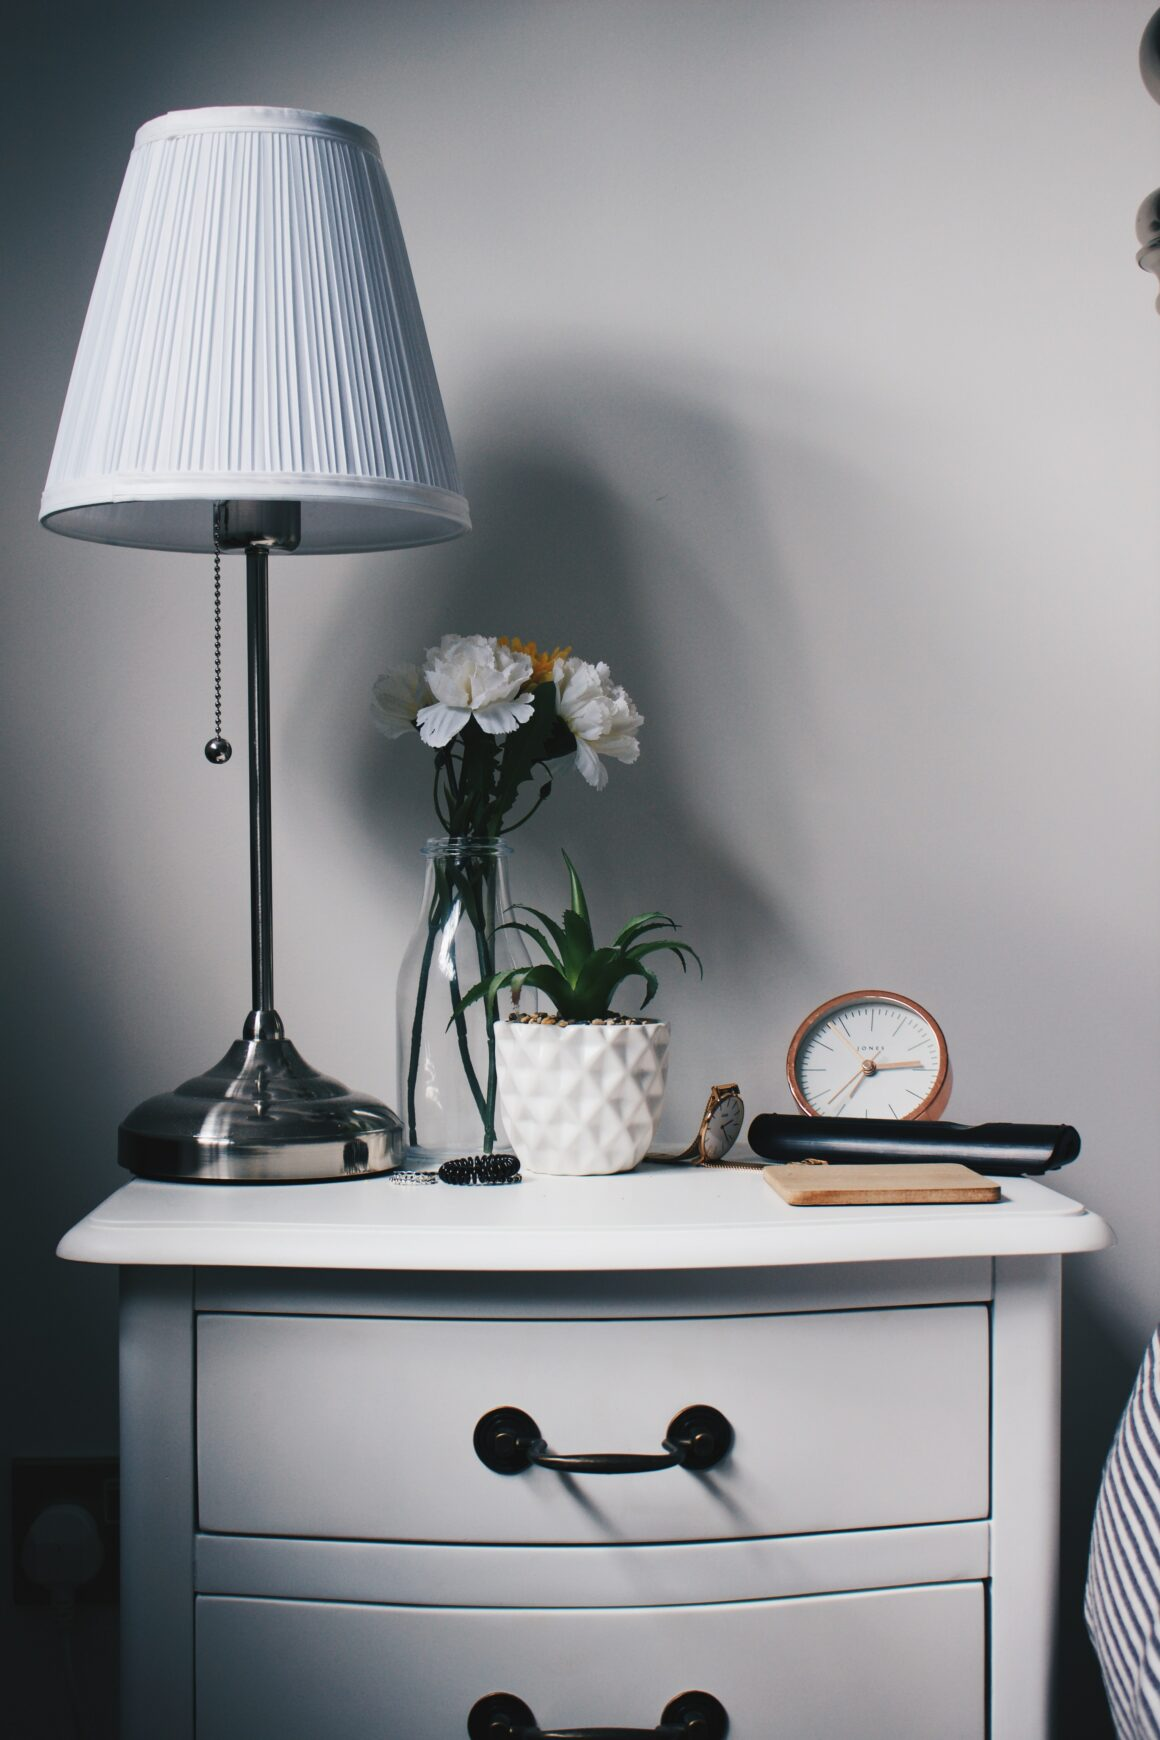 White bedside table decorated with a lamp, flowers, alarm clock, and remote